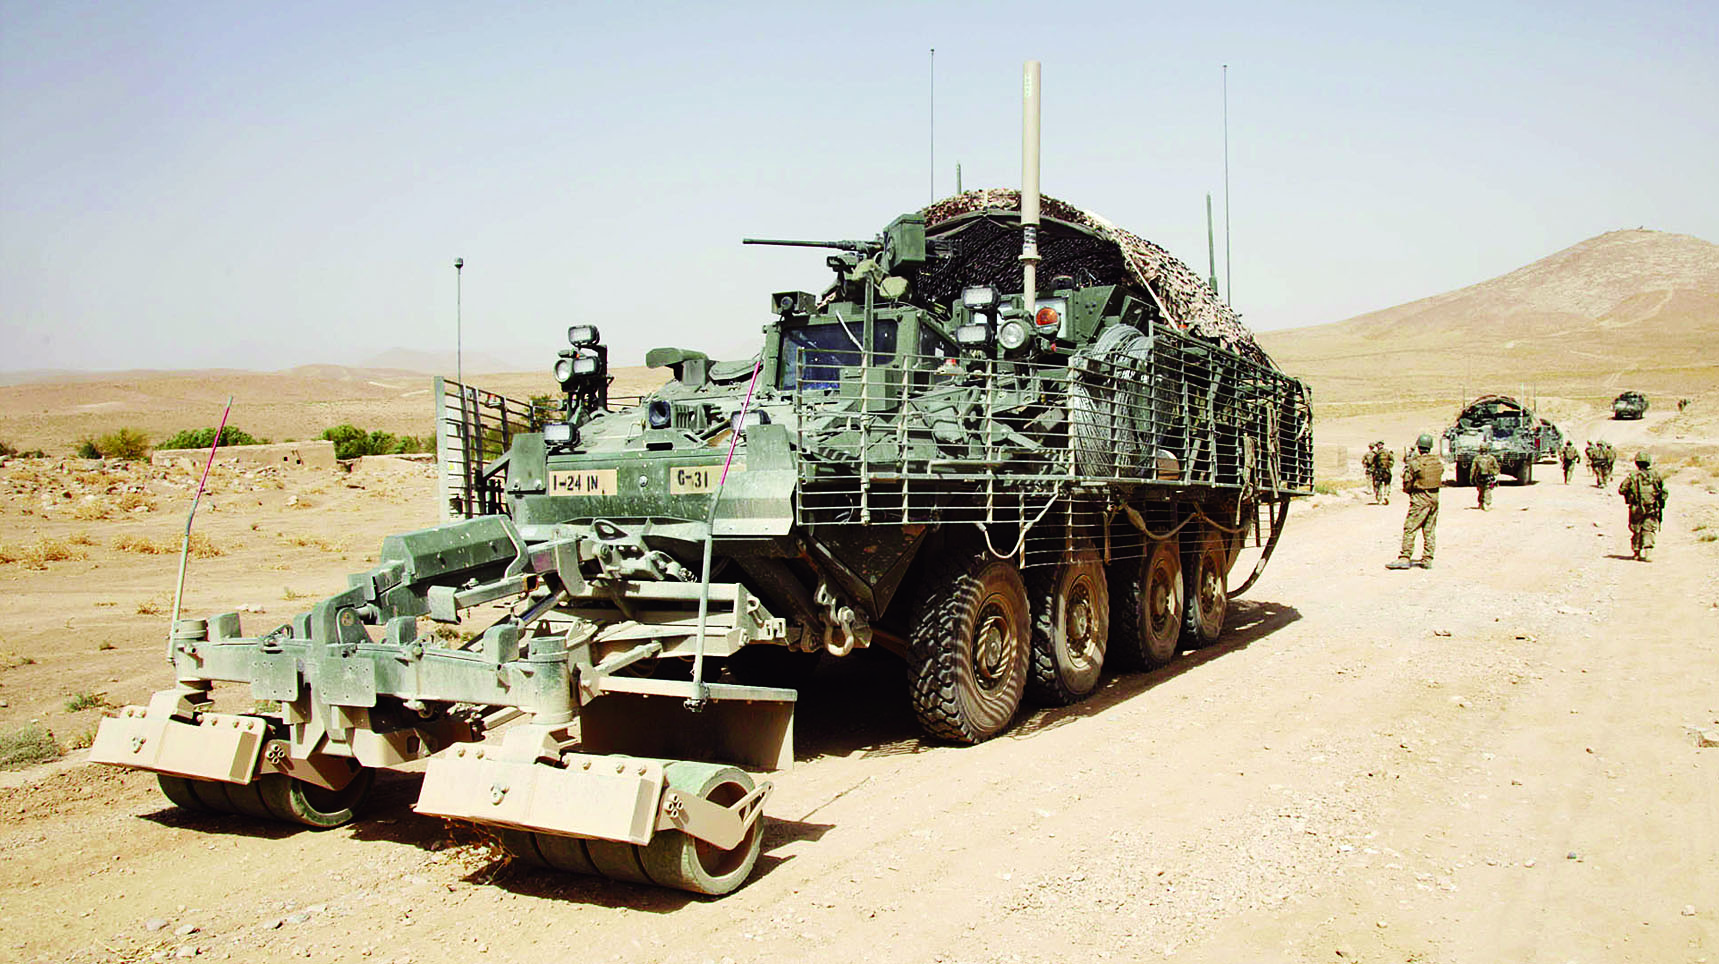 Stryker Family of Vehicles